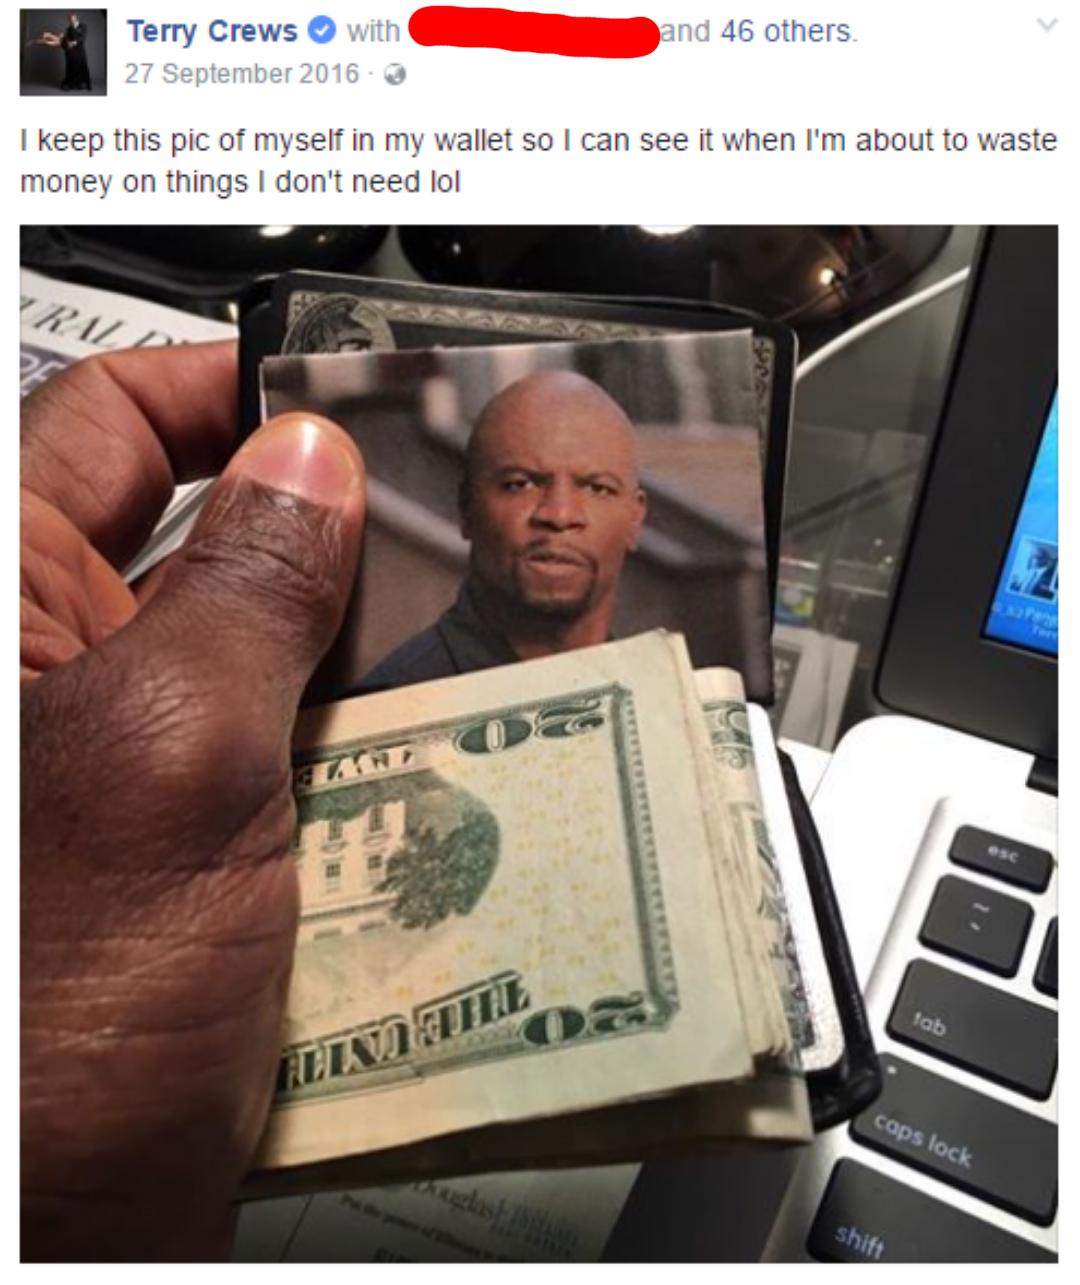 Terry Crews does not waste money on things he doesn't need.